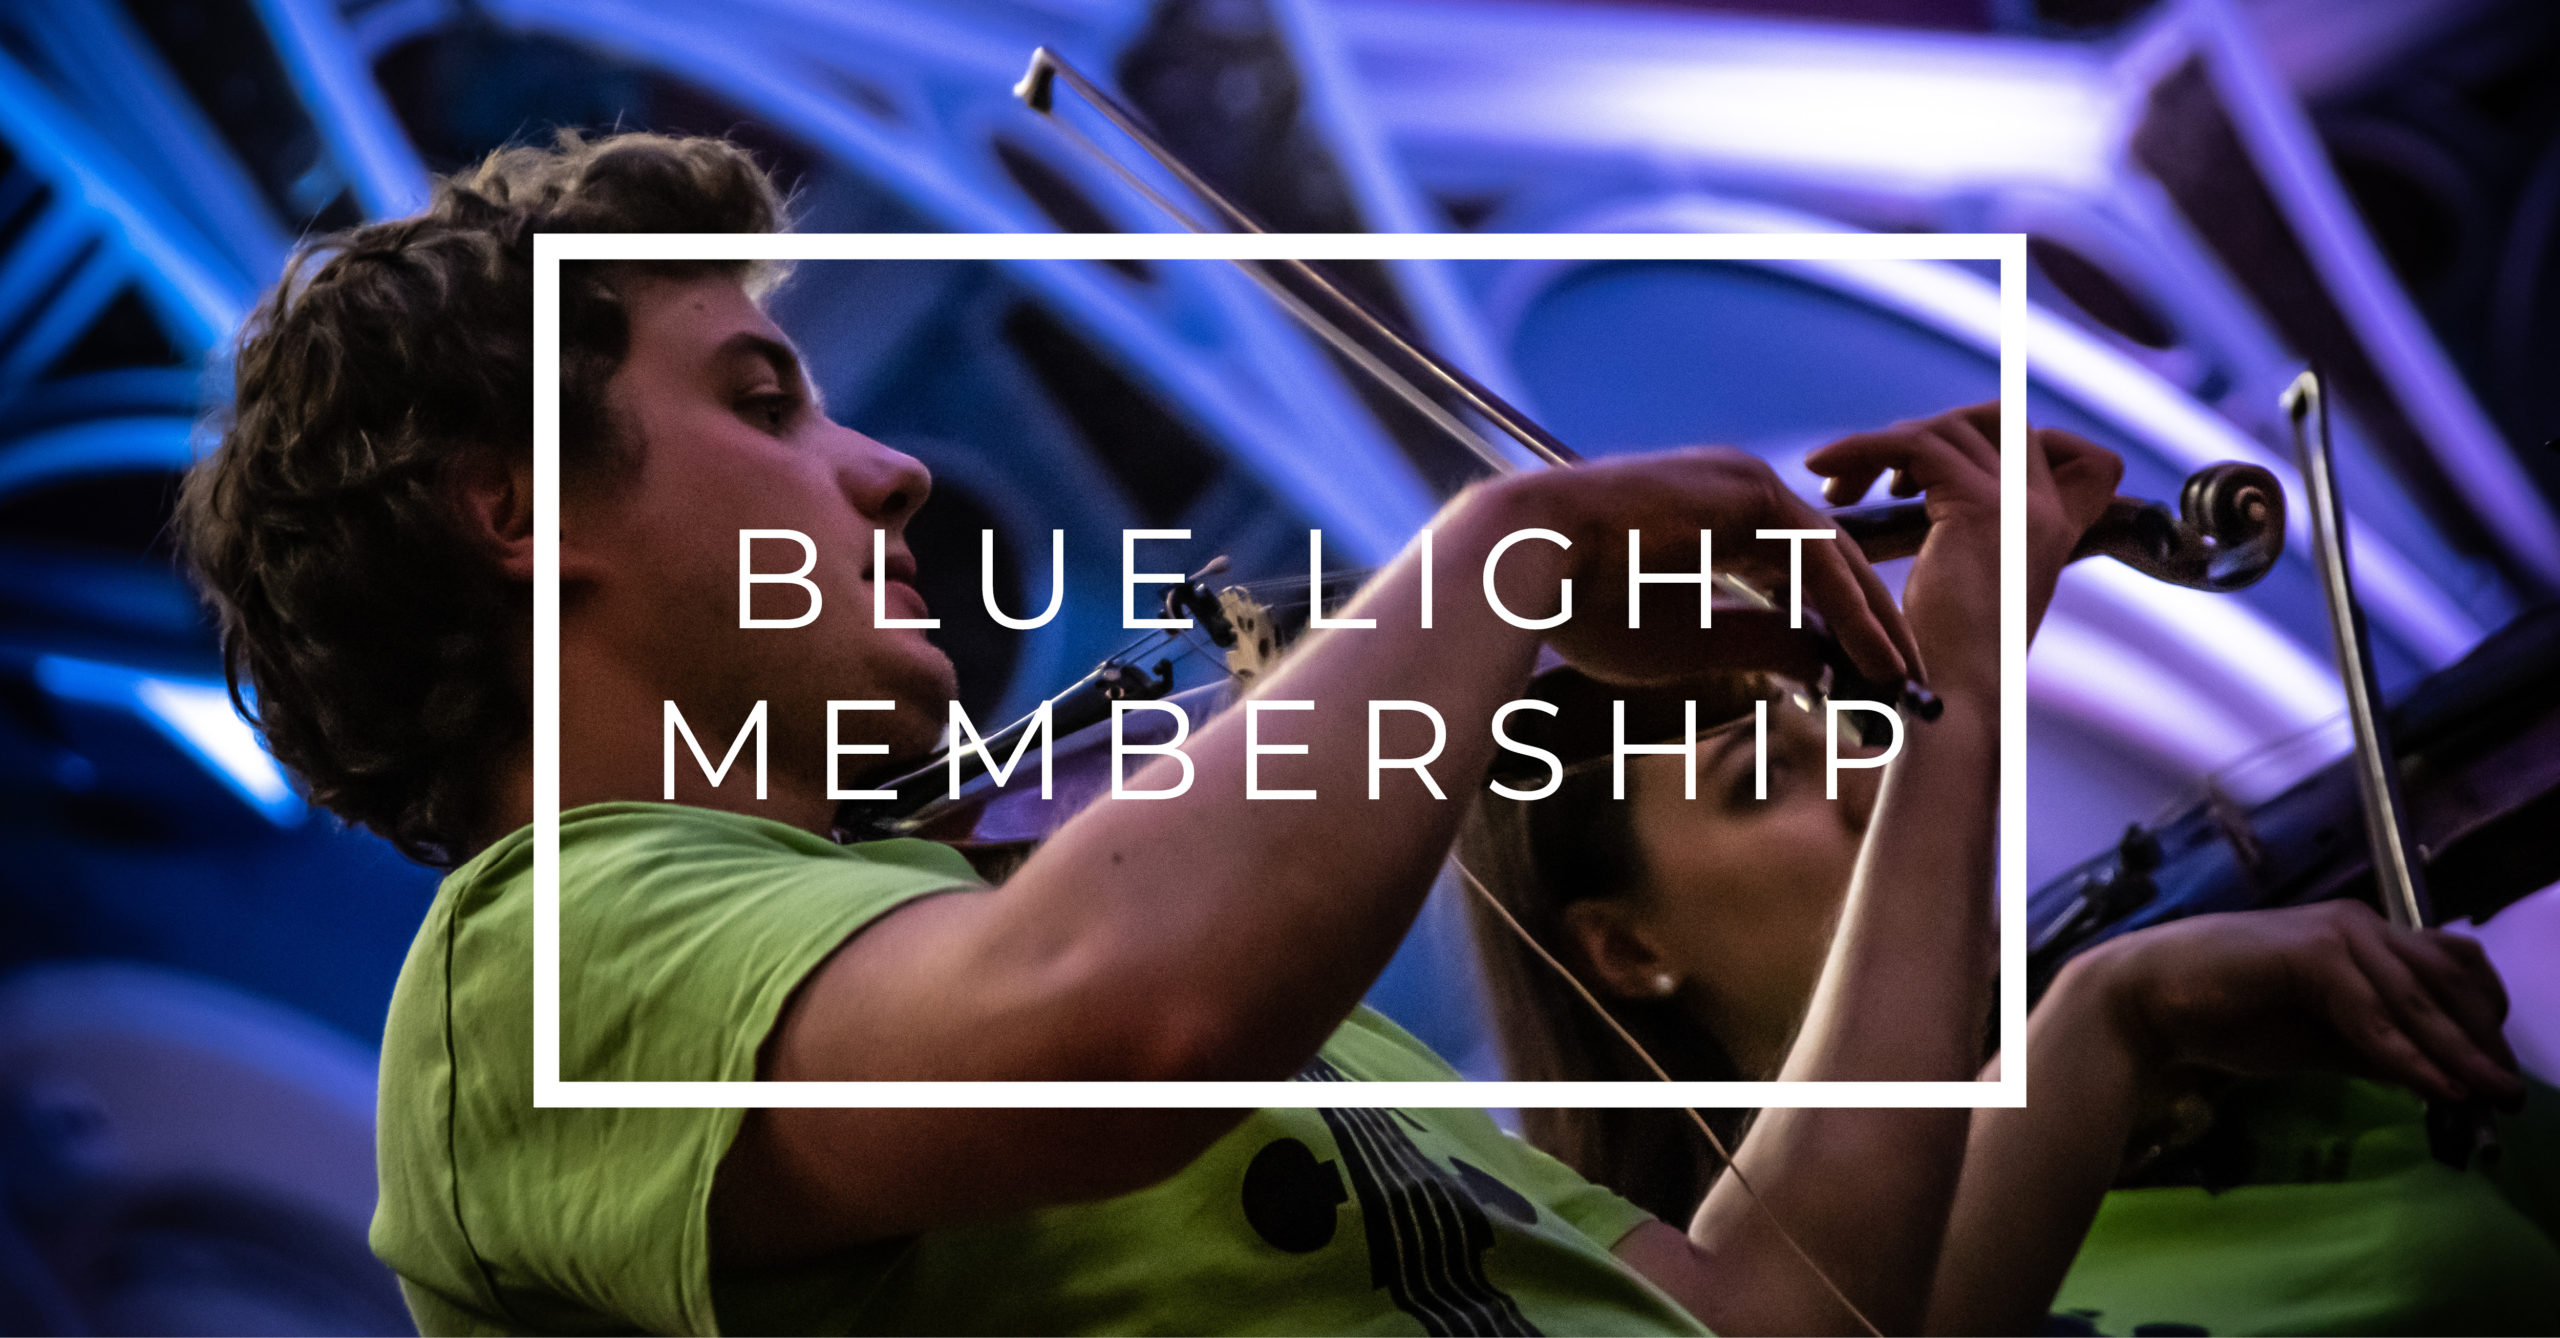 Rusty Membership – Blue Light